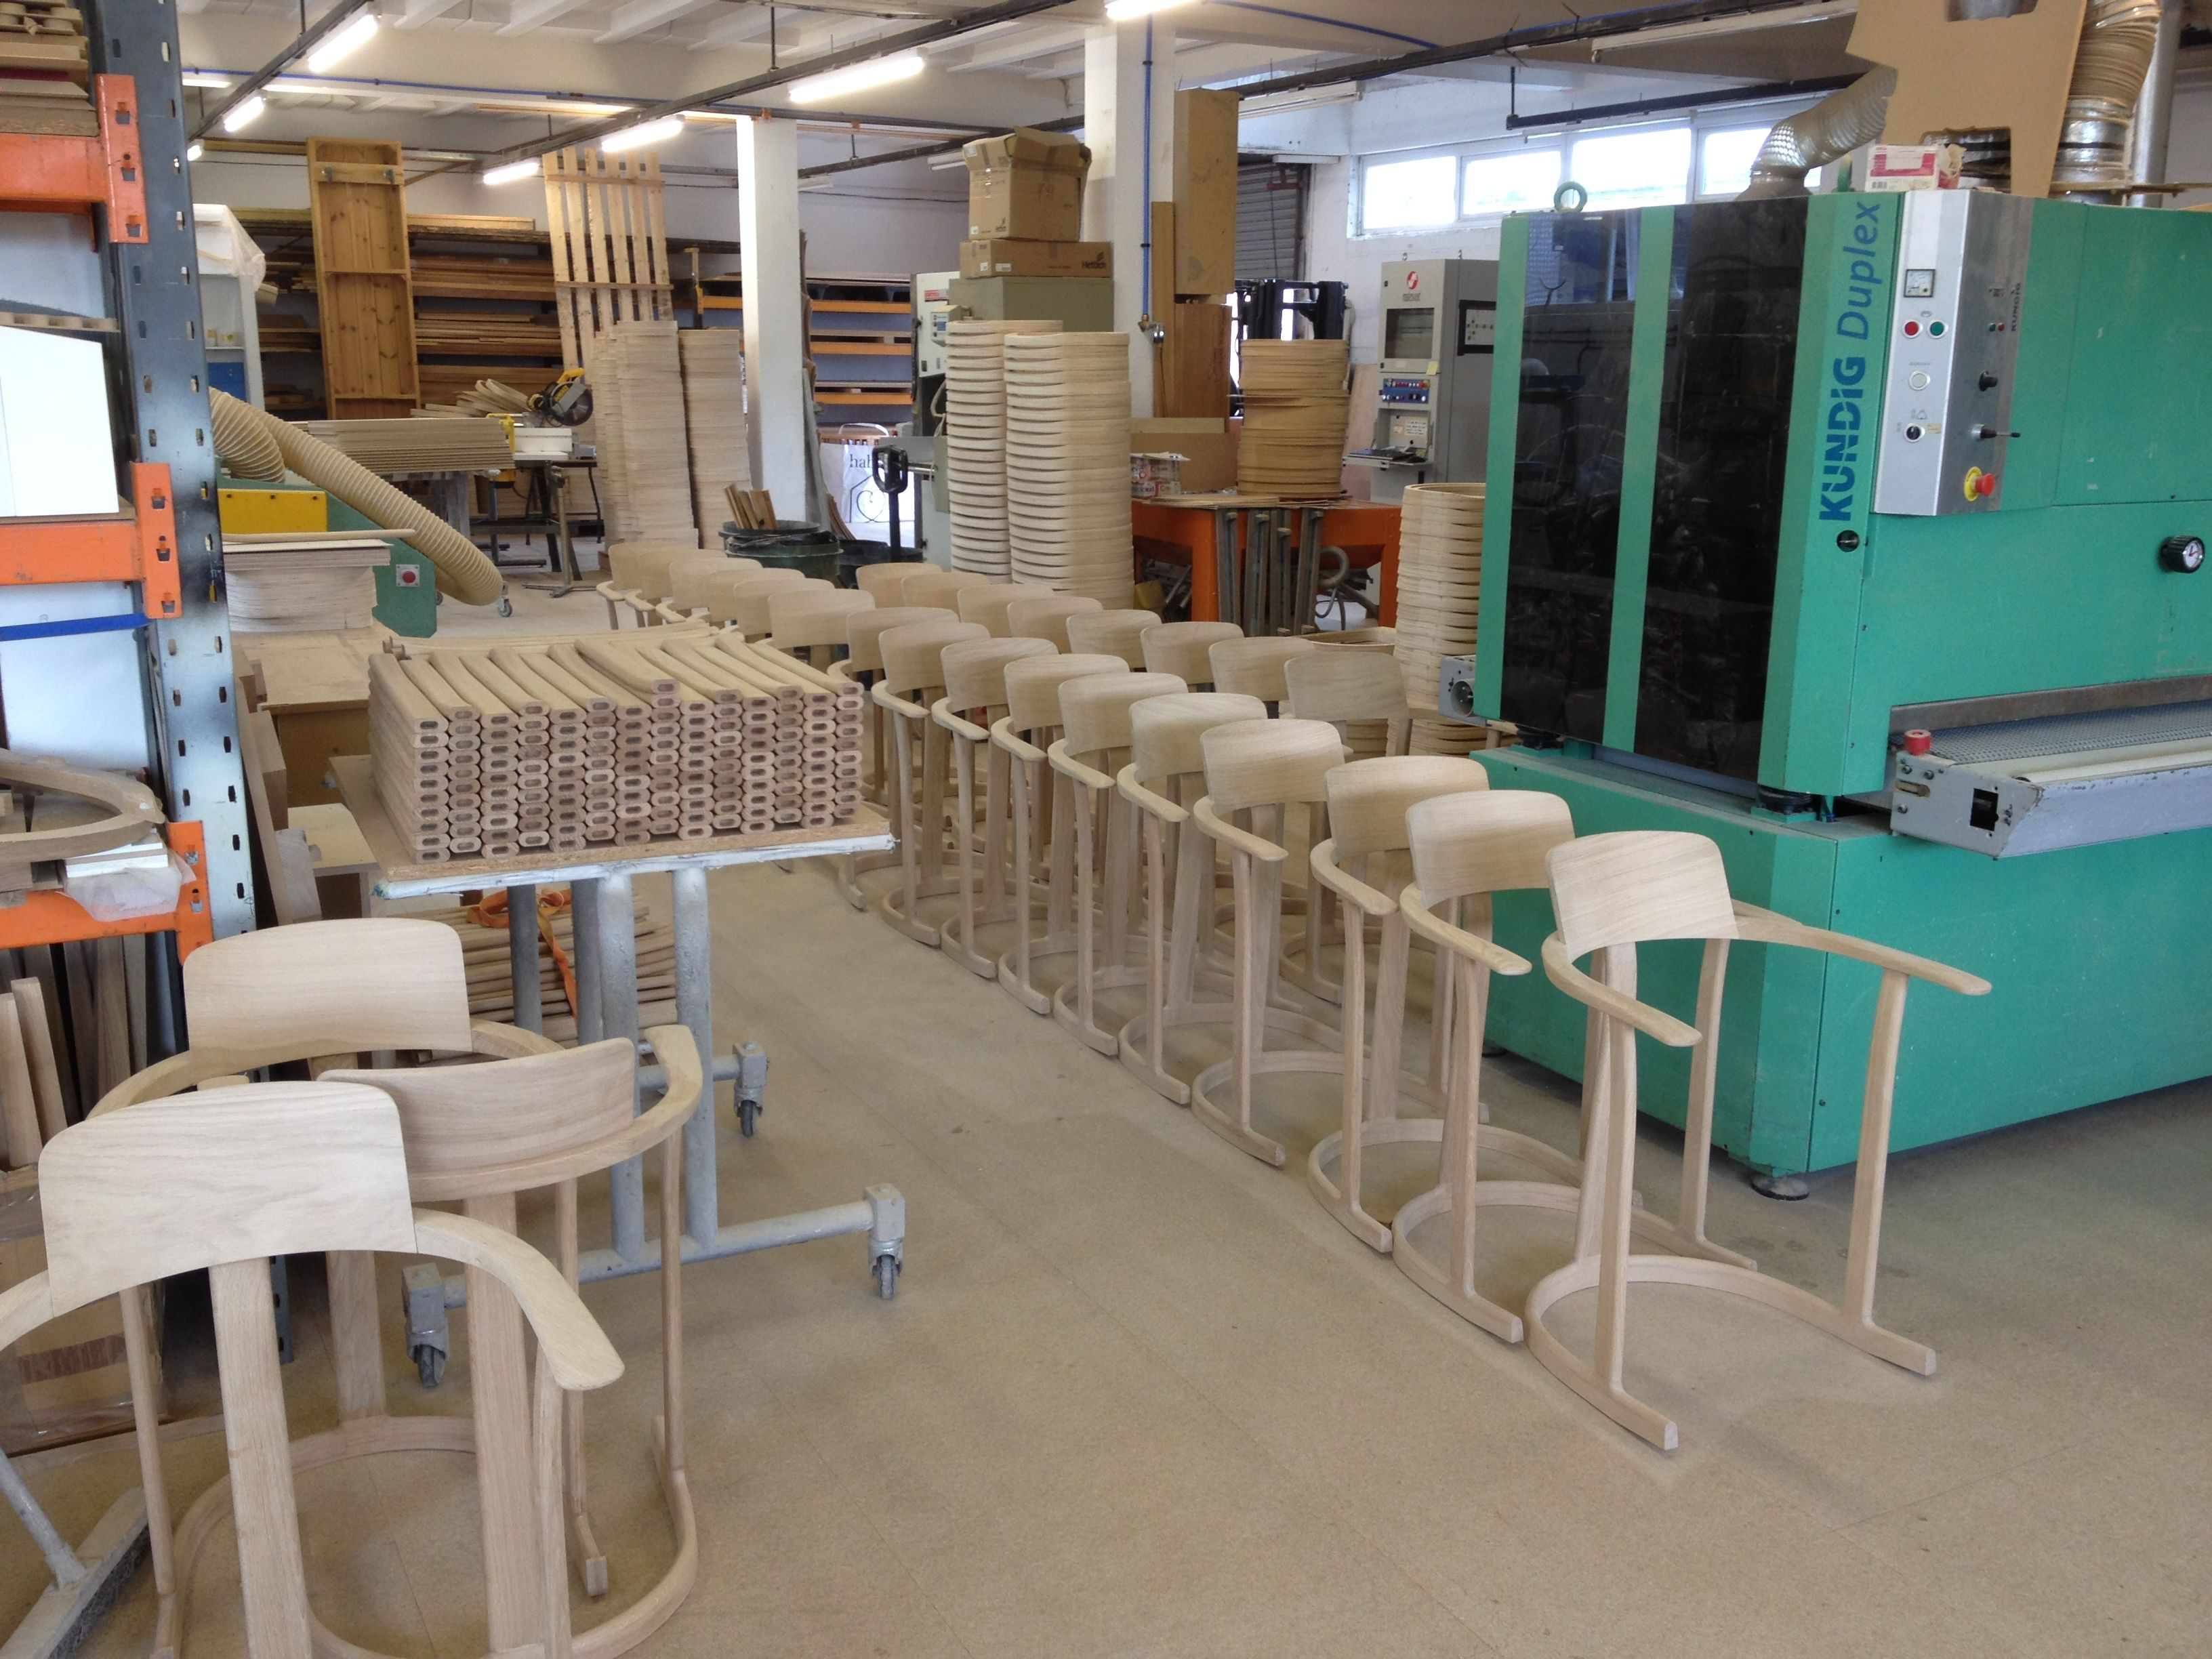 Bodleian Libraries Chairs lining up in the workshop as production is